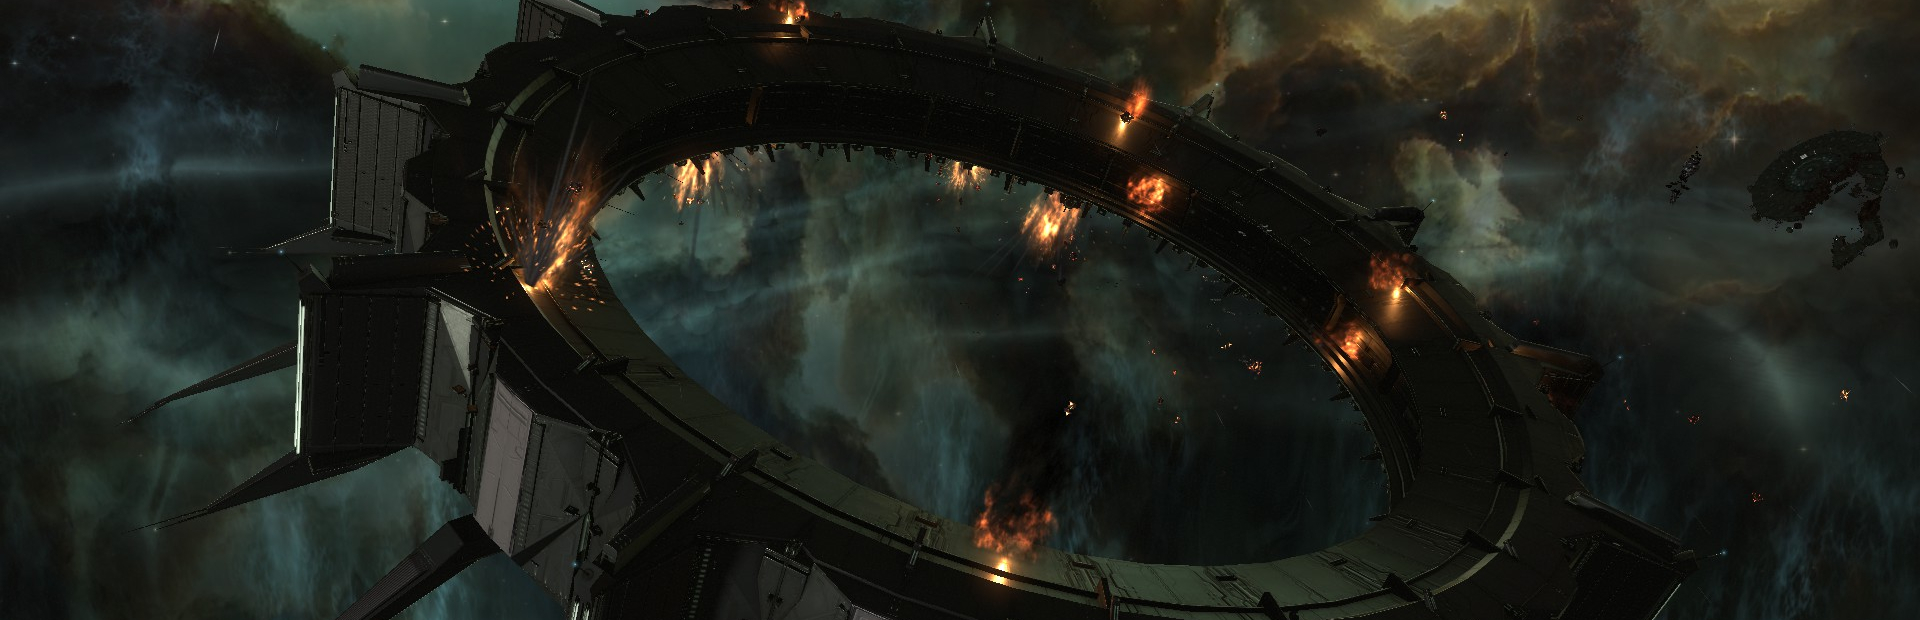 c_0_620_2734_00_images_artykuly_eve-online-f2p2.jpg